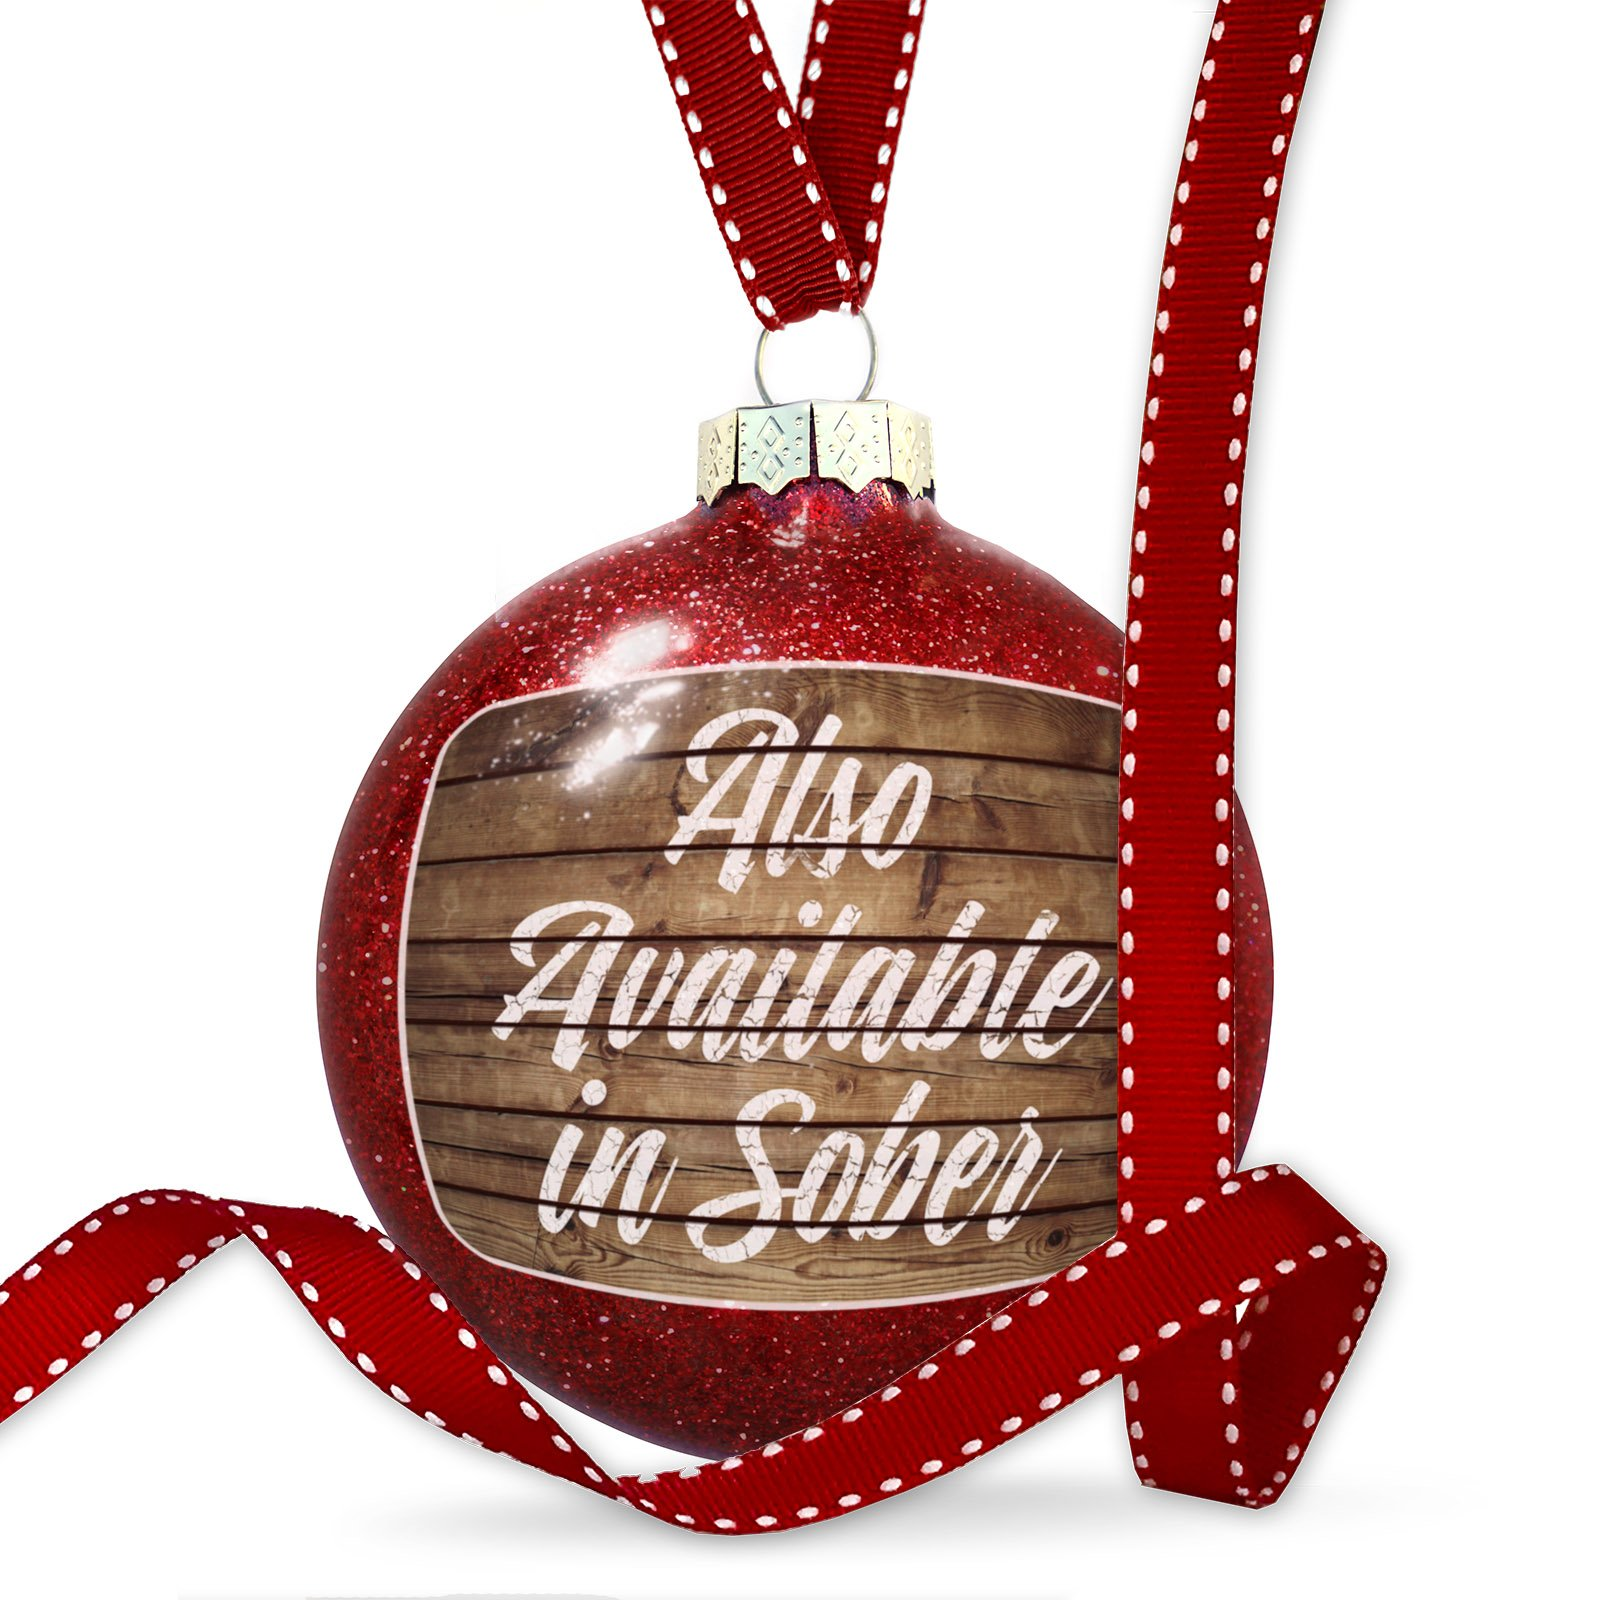 Christmas Decoration Painted Wood Also Available in Sober Ornament